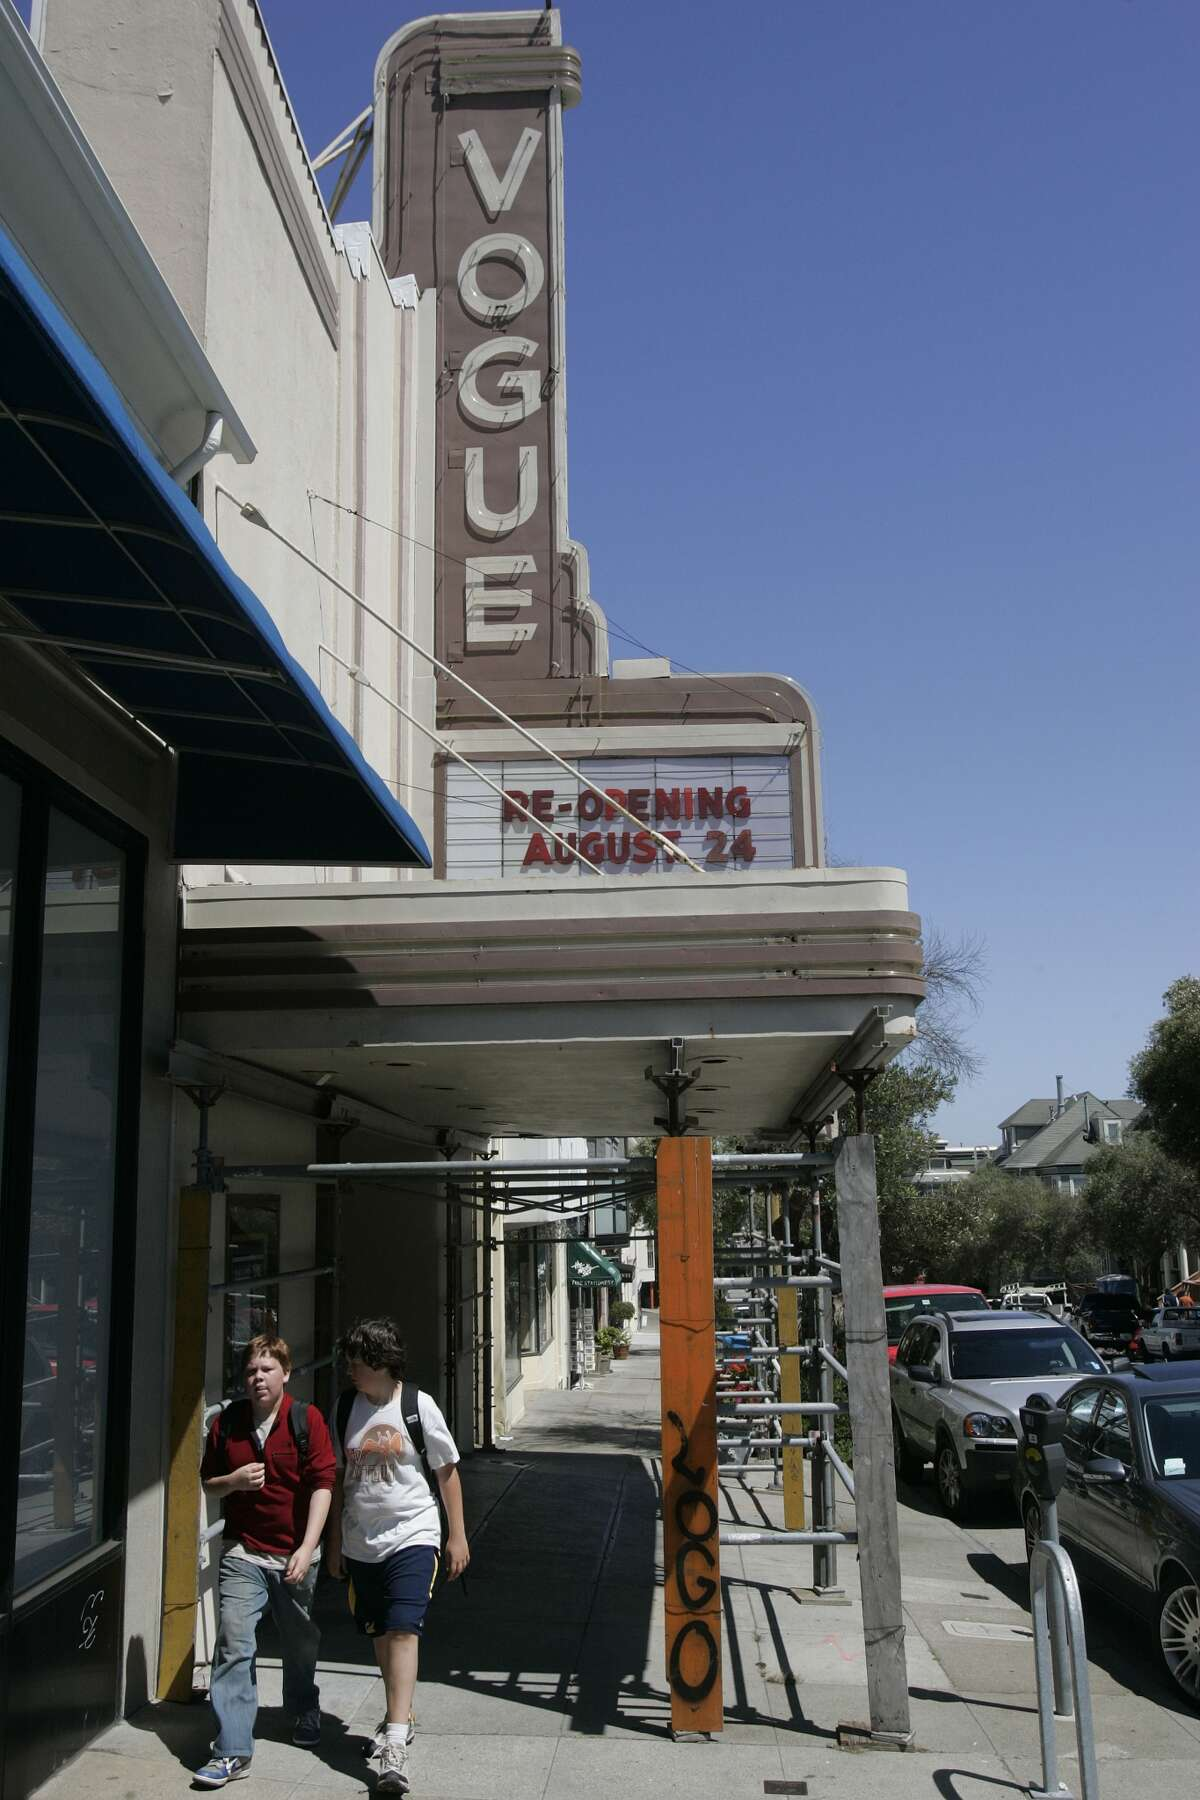 In an event organized by a group of Satanists, the Vogue Theatre in San Francisco will screen 2015 indie flick